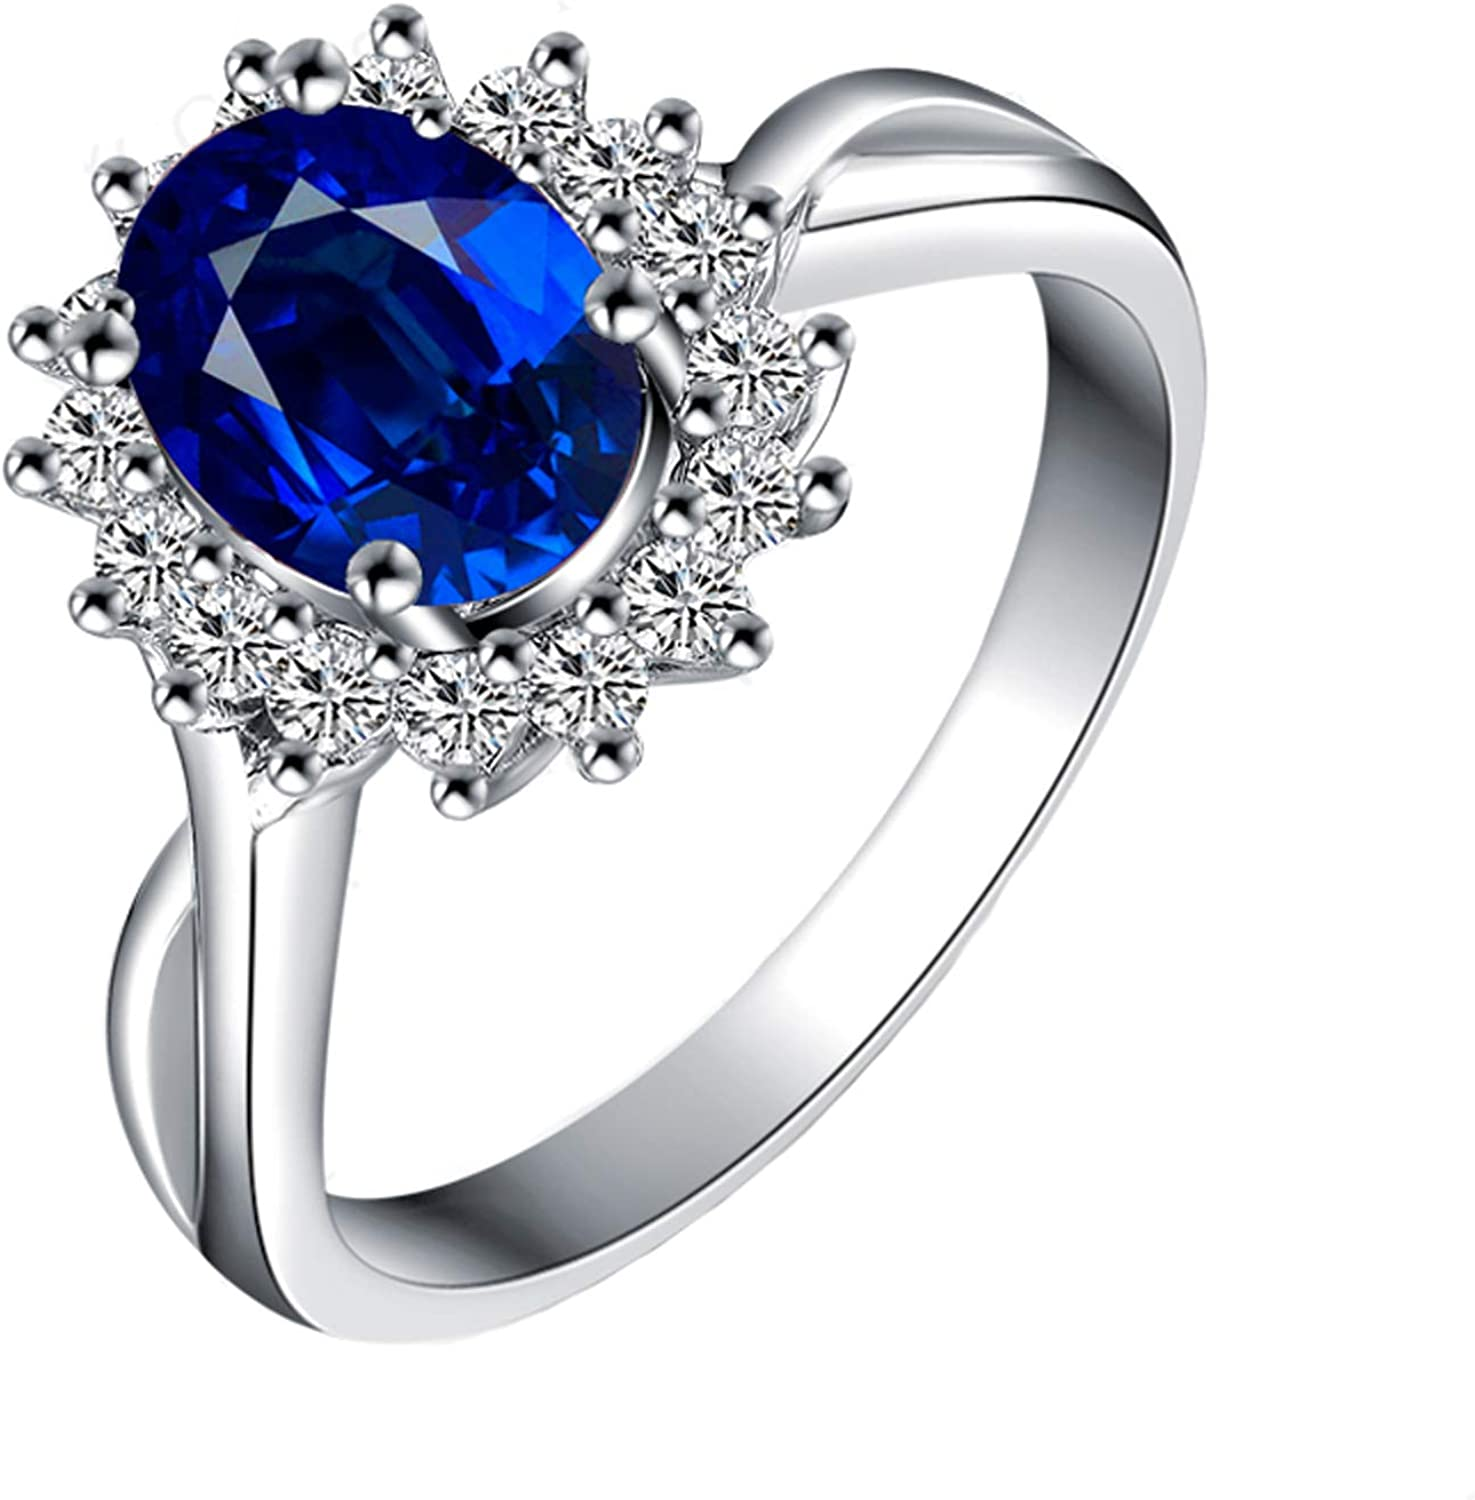 Aokarry 18k White Gold Flower Diamonds Engagement Wedding Ring for Women with Oval Sapphire